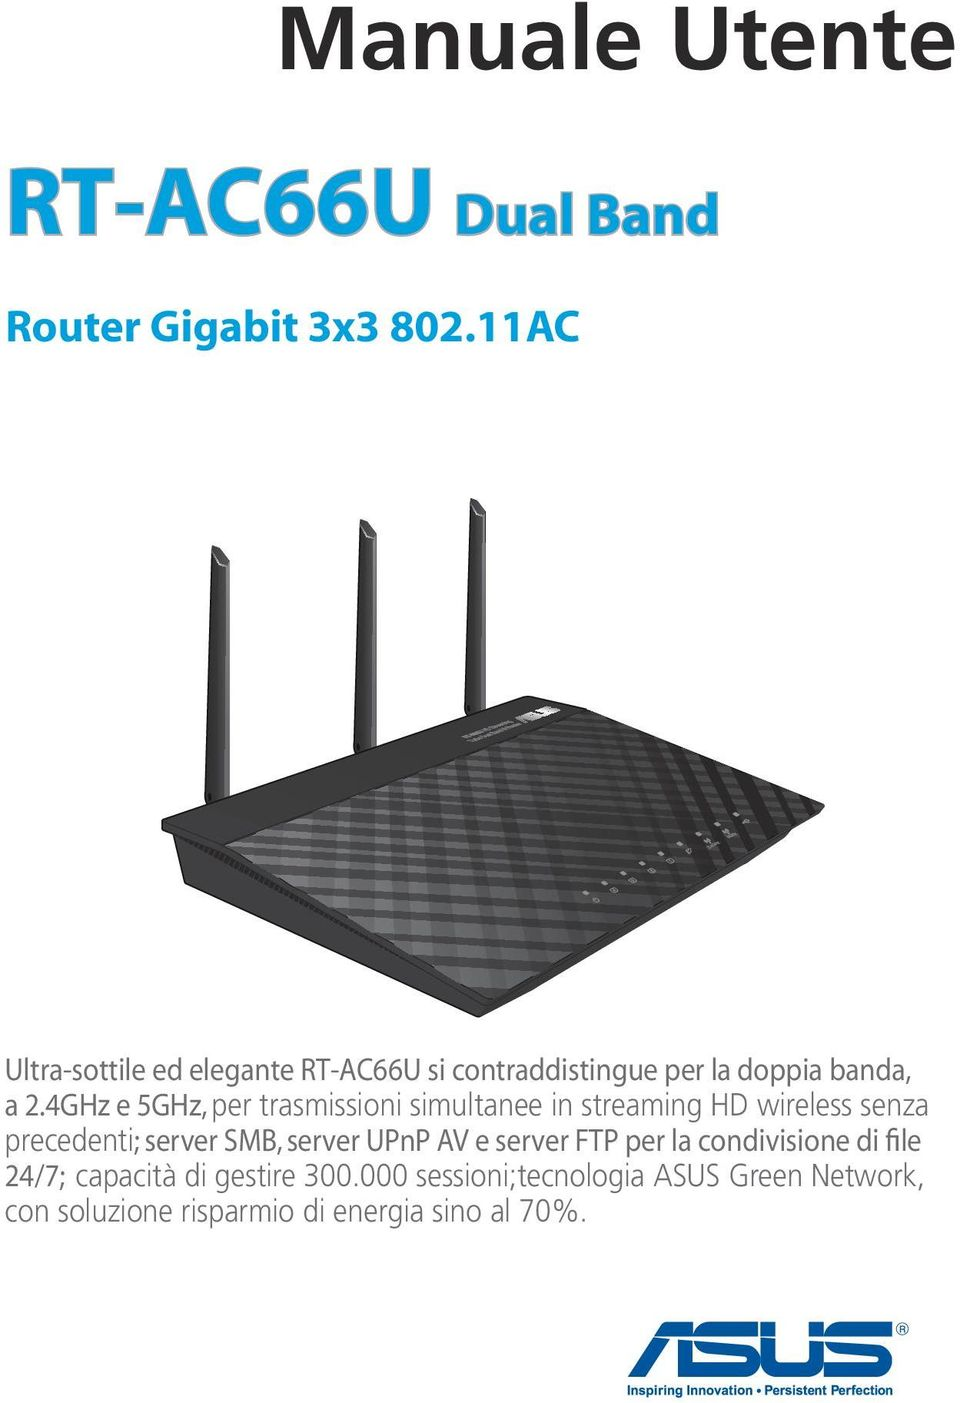 4GHz e 5GHz, per trasmissioni simultanee in streaming HD wireless senza precedenti; server SMB, server